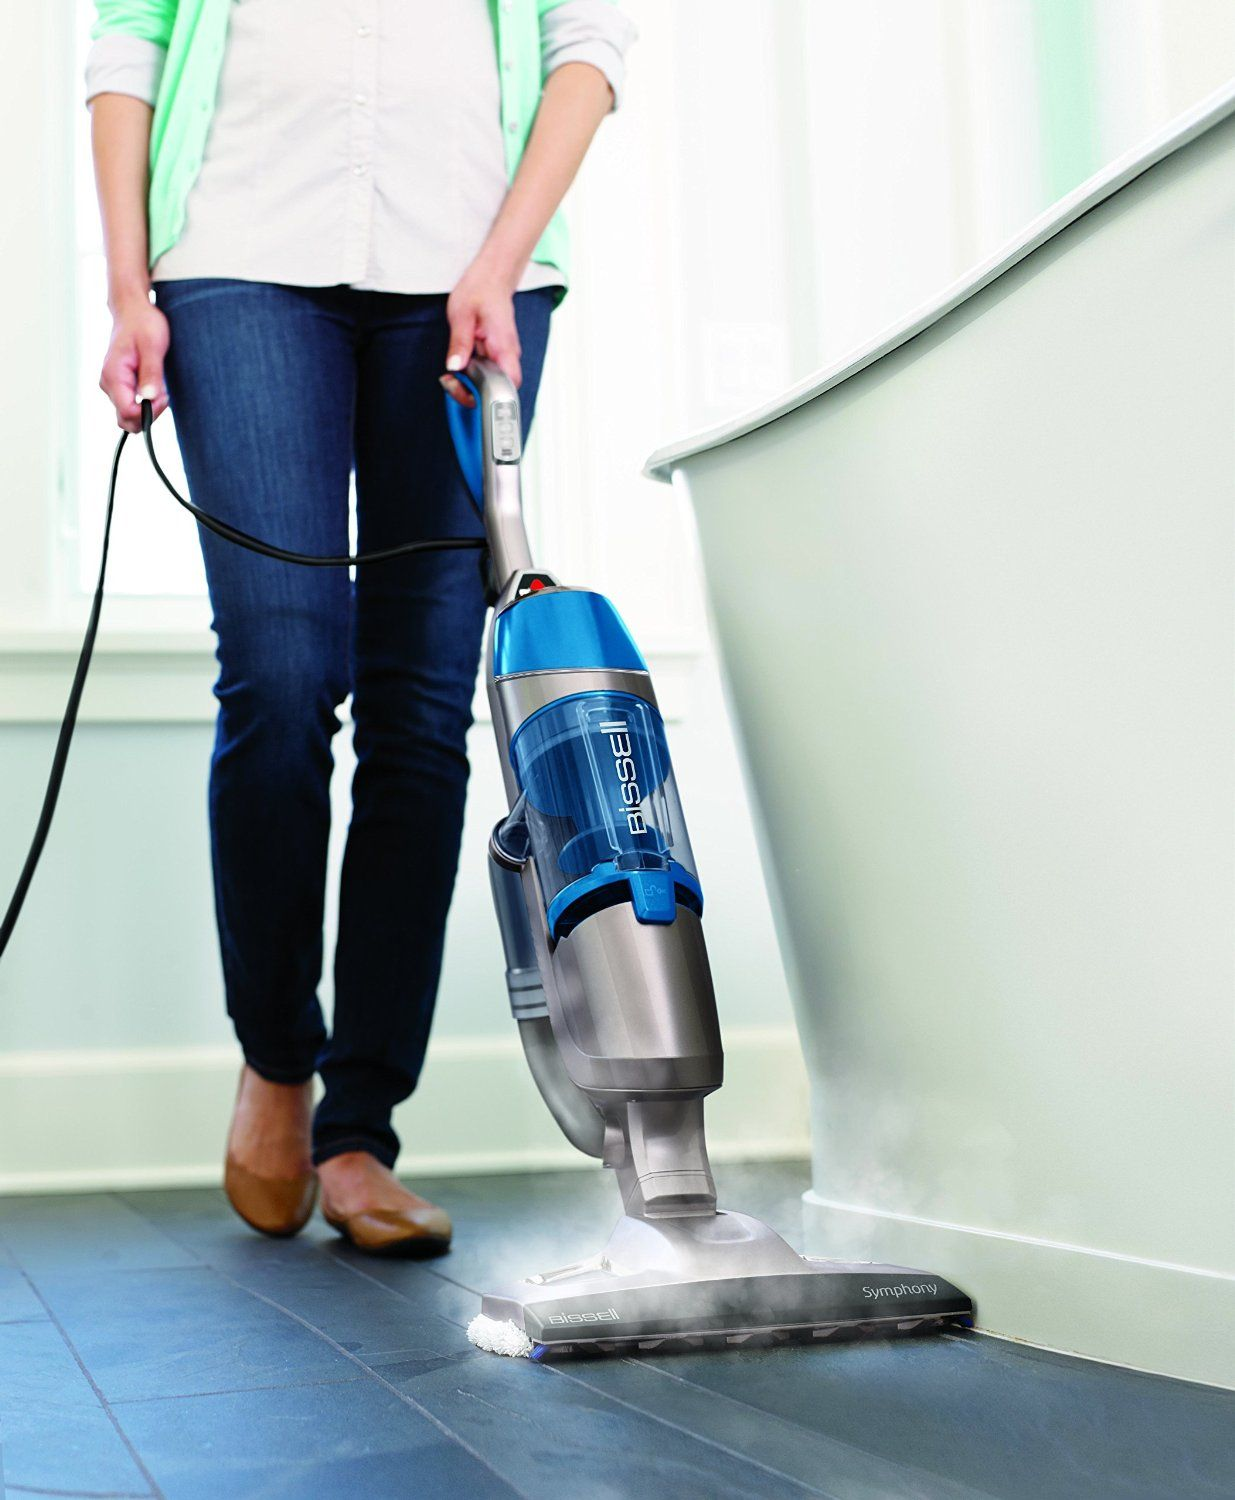 Canvas of four best mops for hardwood floors best vacuum cleaners canvas of four best mops for hardwood floors dailygadgetfo Choice Image